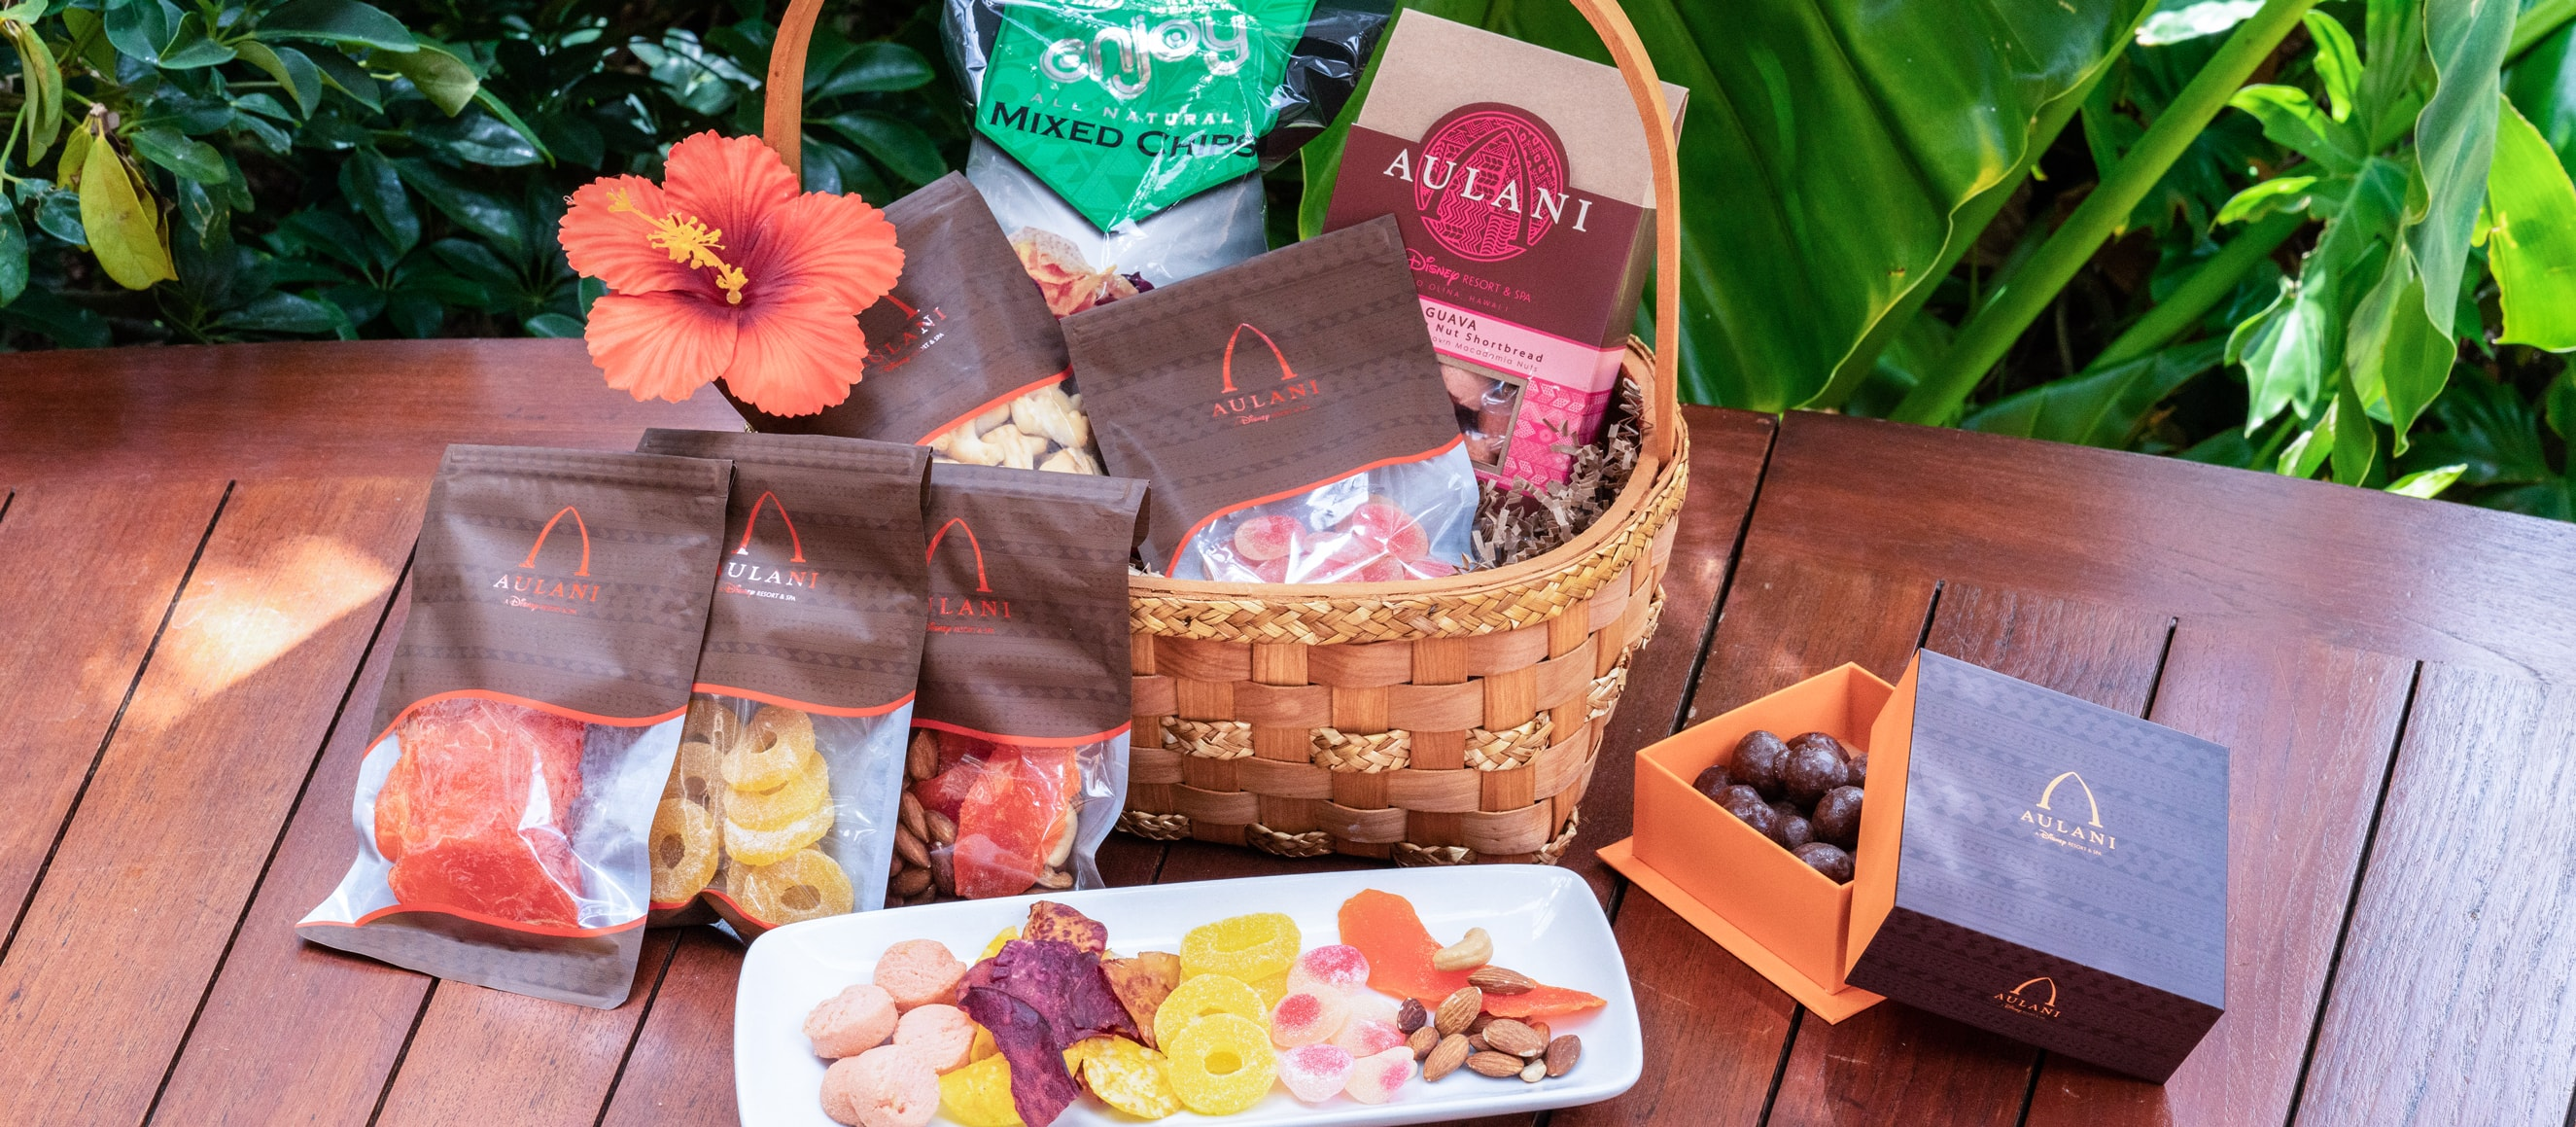 A gift basket of treats, including an Aulani cookie box, accompanied by snacks arrayed on a platter